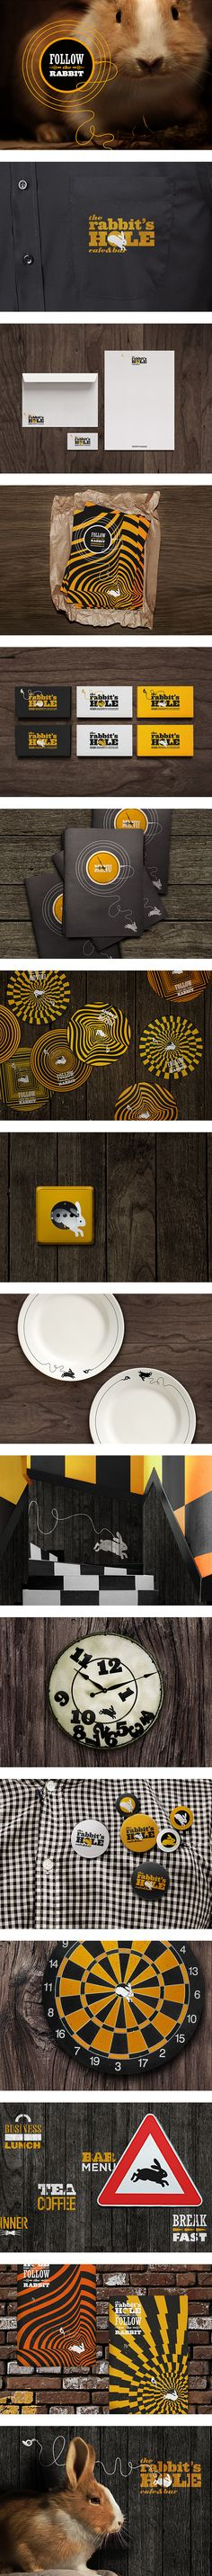 The rabbits hole on Behance #identity #packaging #branding #marketing PD